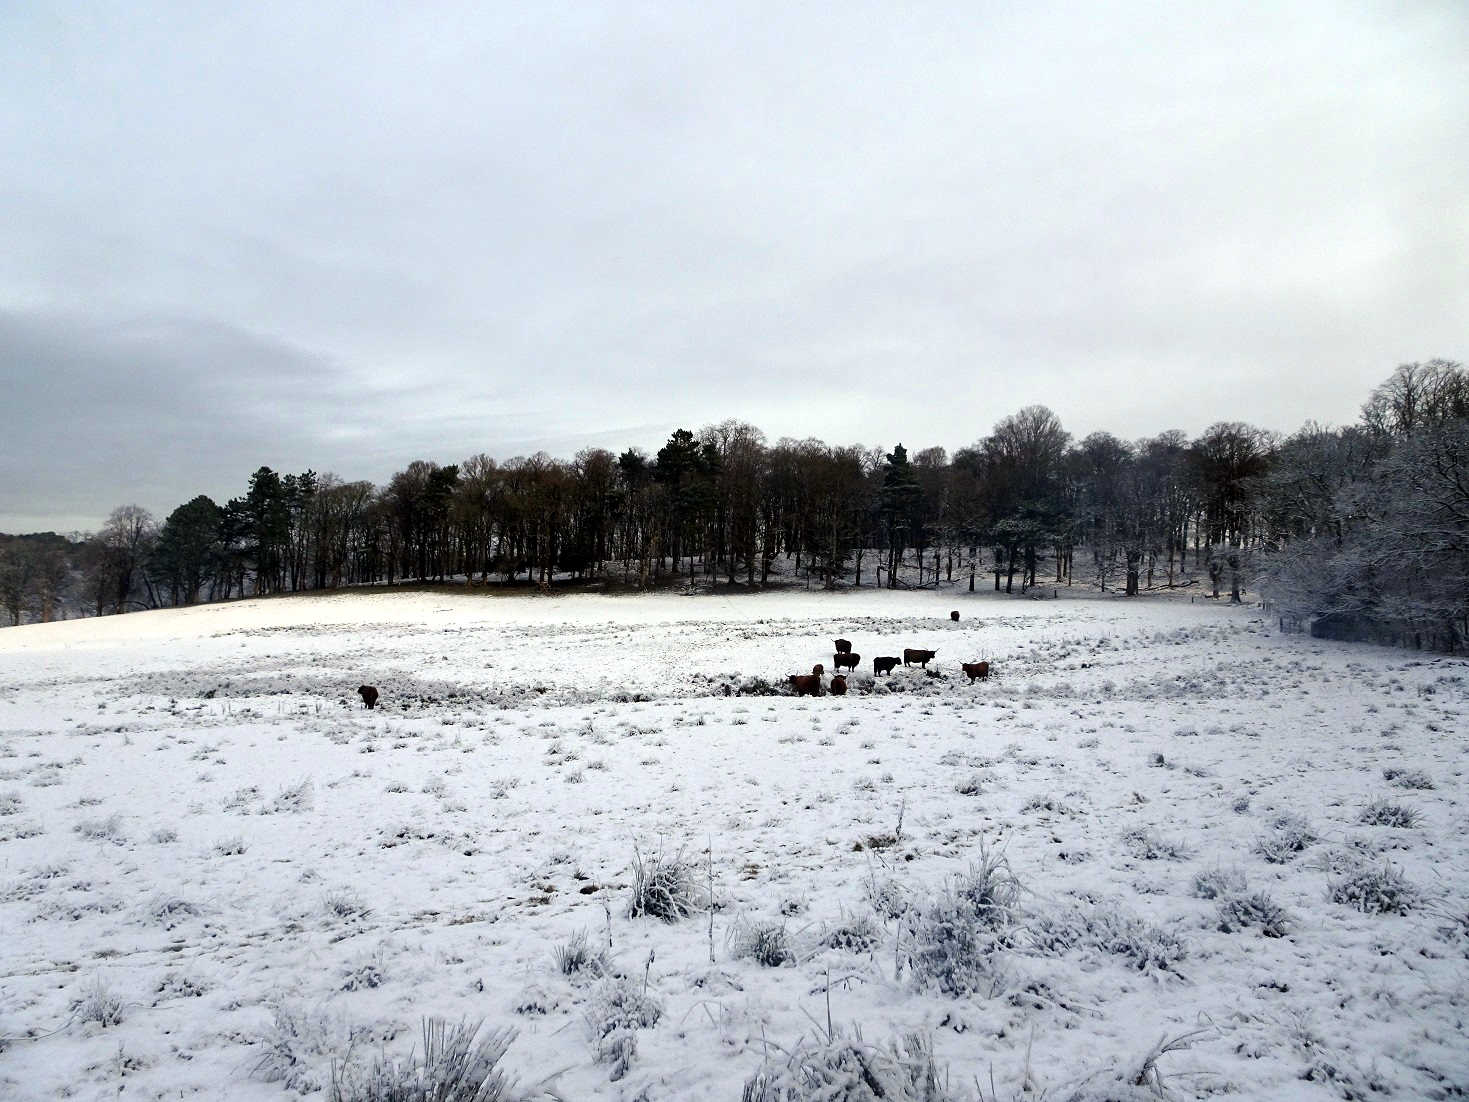 highland coos in the snow at Pollock Park